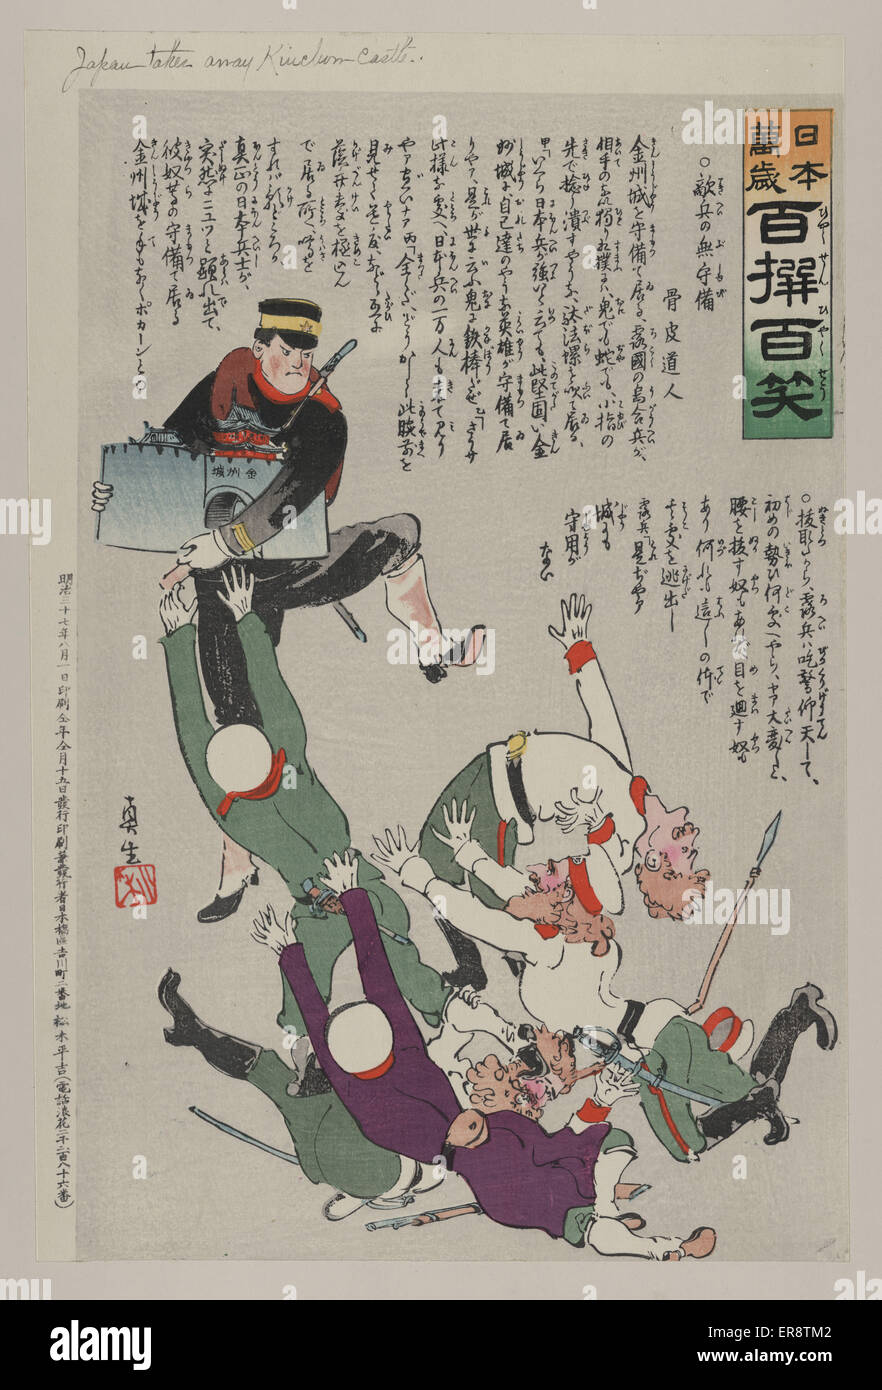 Japan takes away Kinchow Castle. Print shows a Japanese soldier holding the Kinchow Castle with wall and gate in - Stock Image